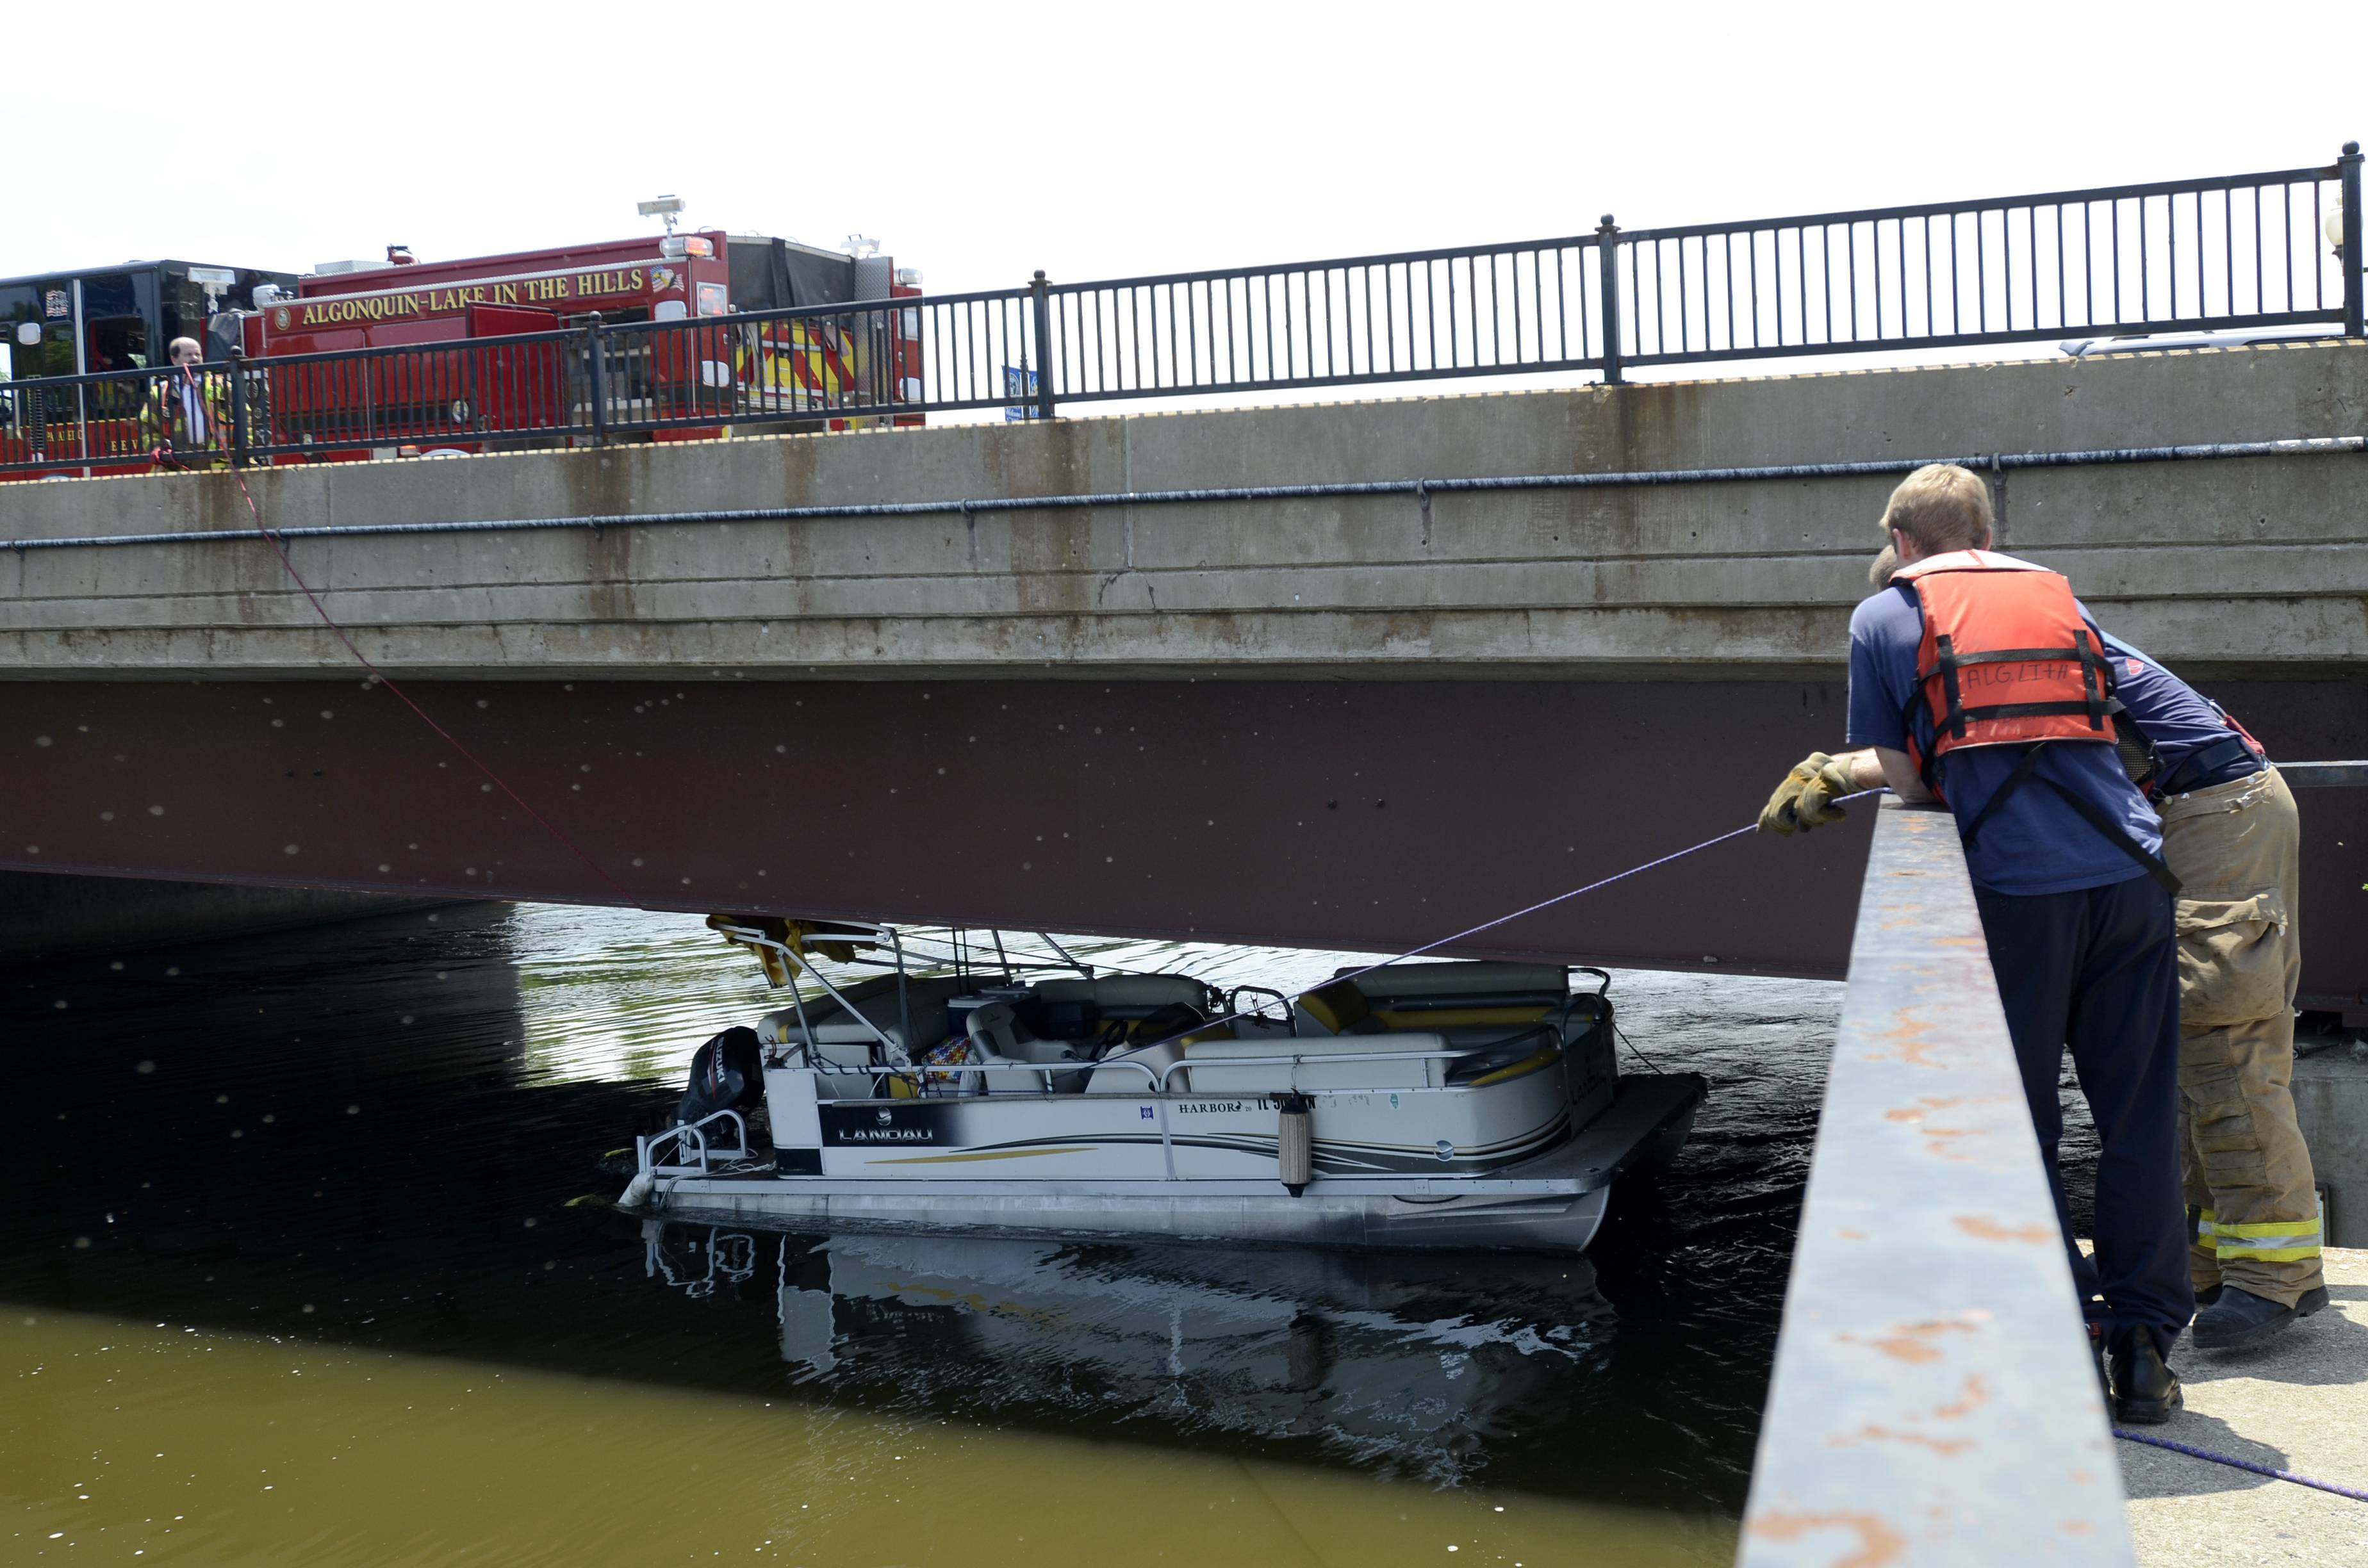 Grace and Steve Leseth were rescued from their pontoon boat Wednesday afternoon under the Algonquin Road bridge by the Algonquin-Lake in the Hills Fire Protection District.